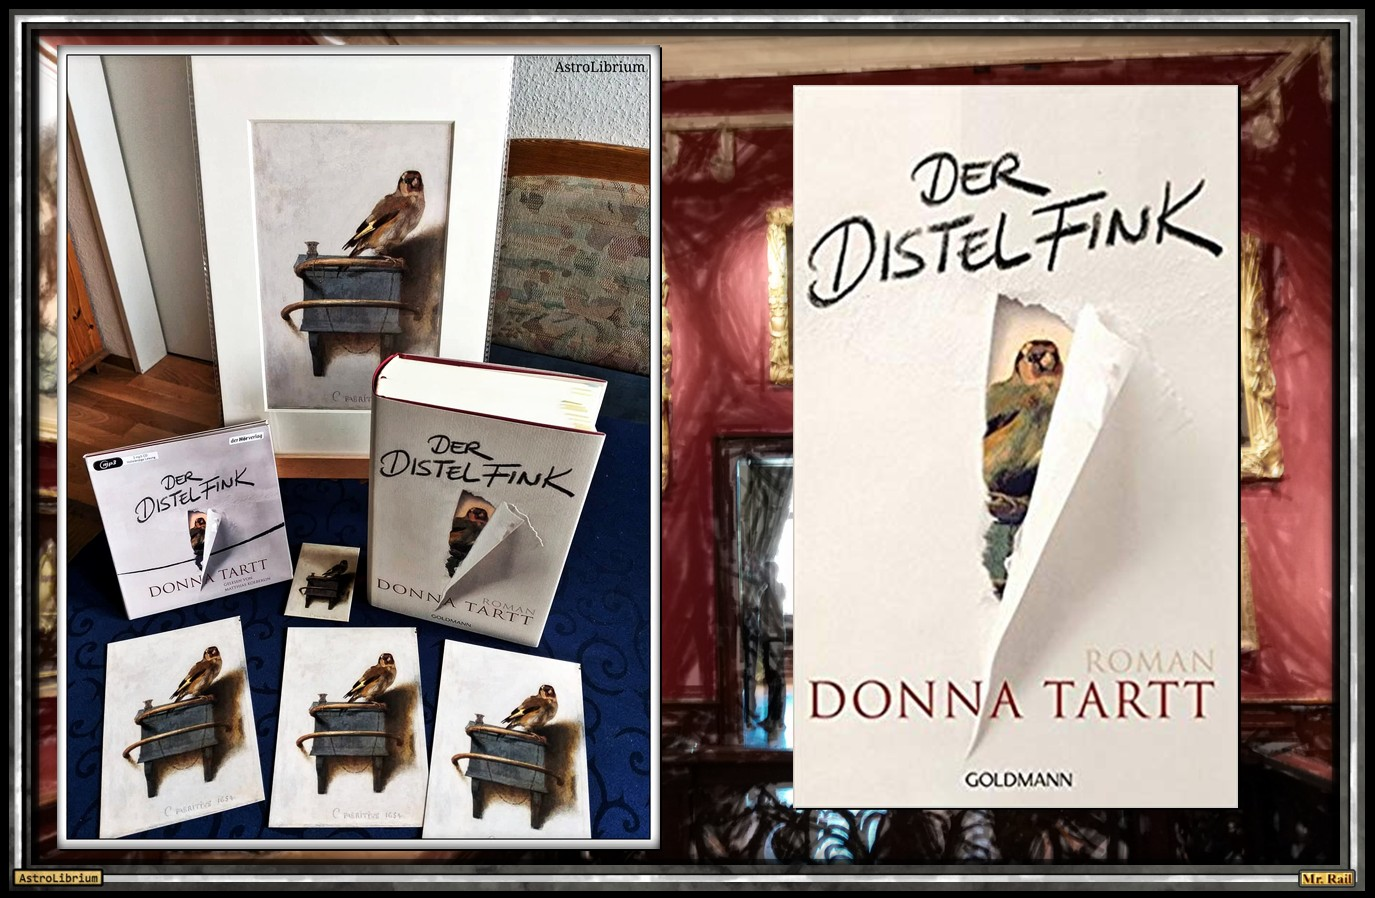 Der Distelfink Film